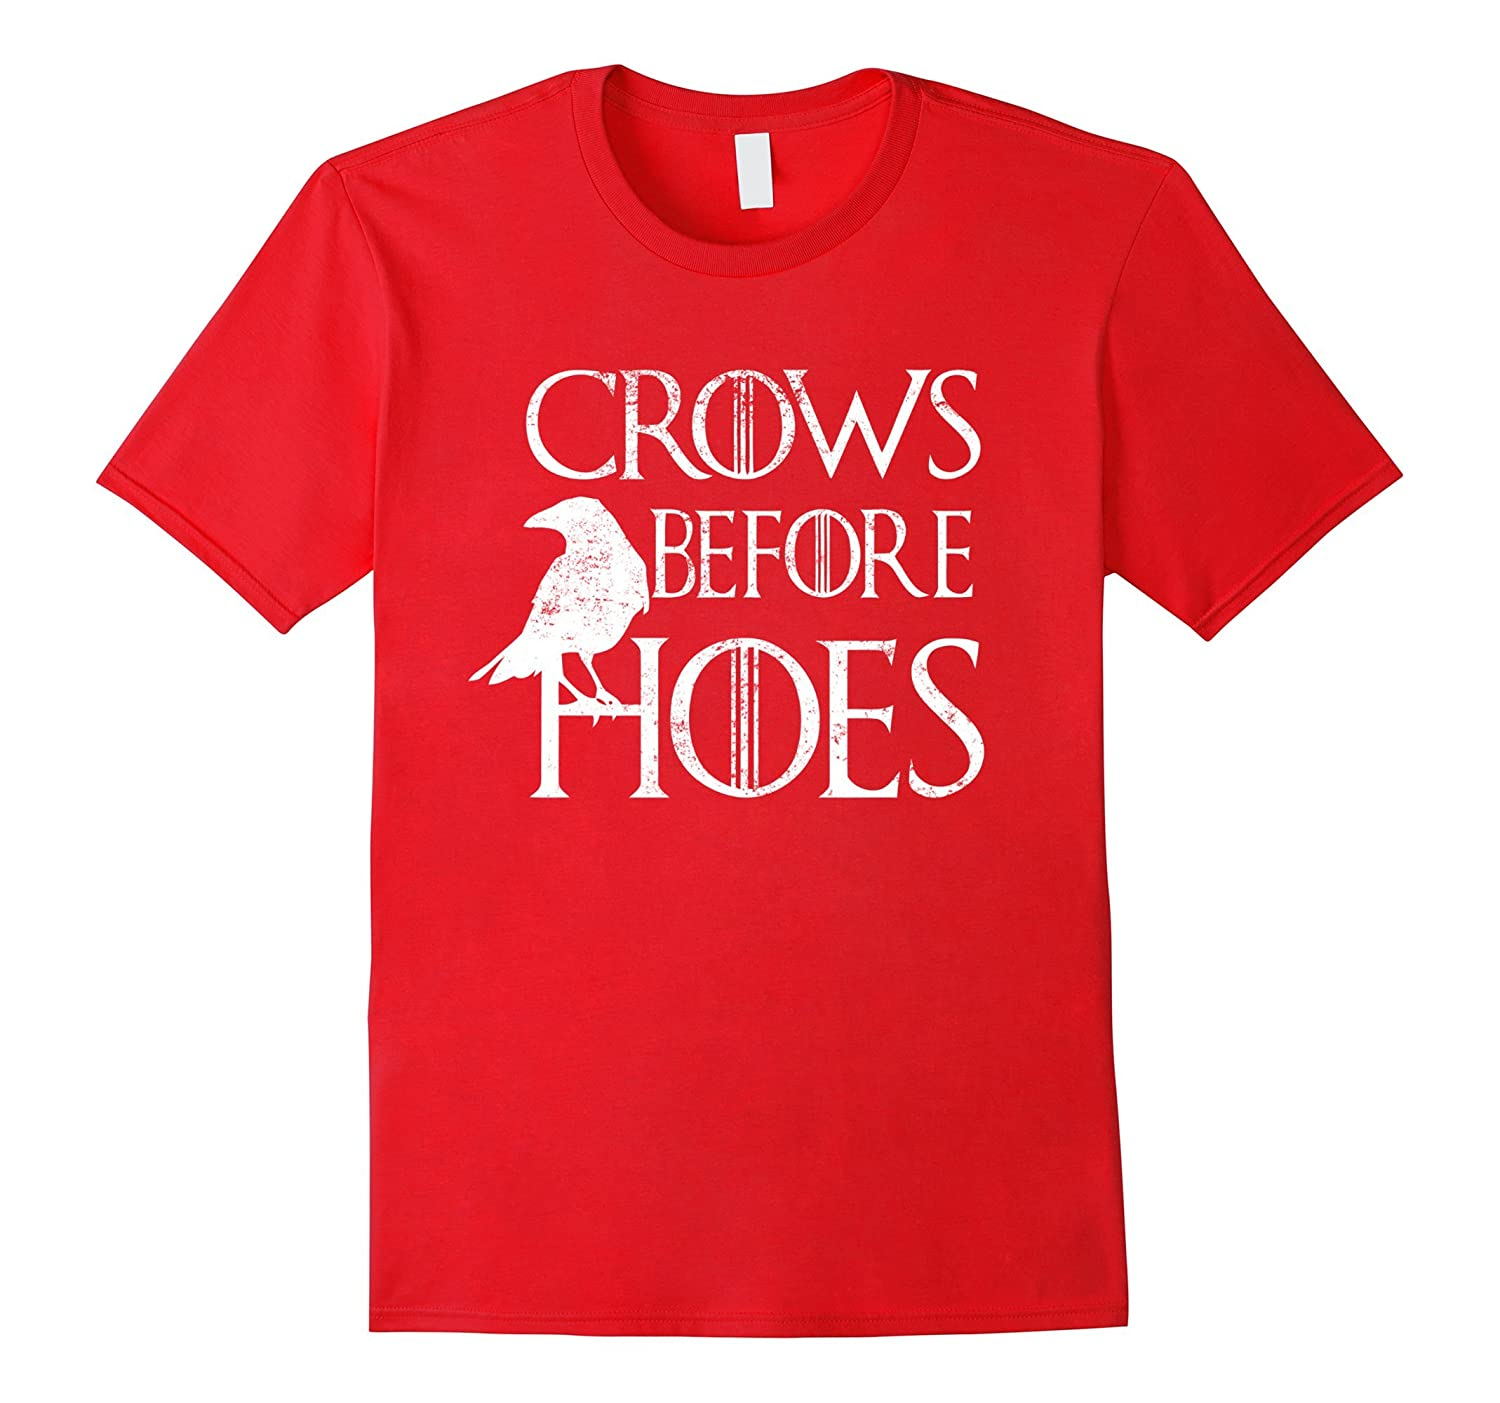 Crows Before Hoes- Geekery Shirt, Mens tshirt Geekery Gift-TH